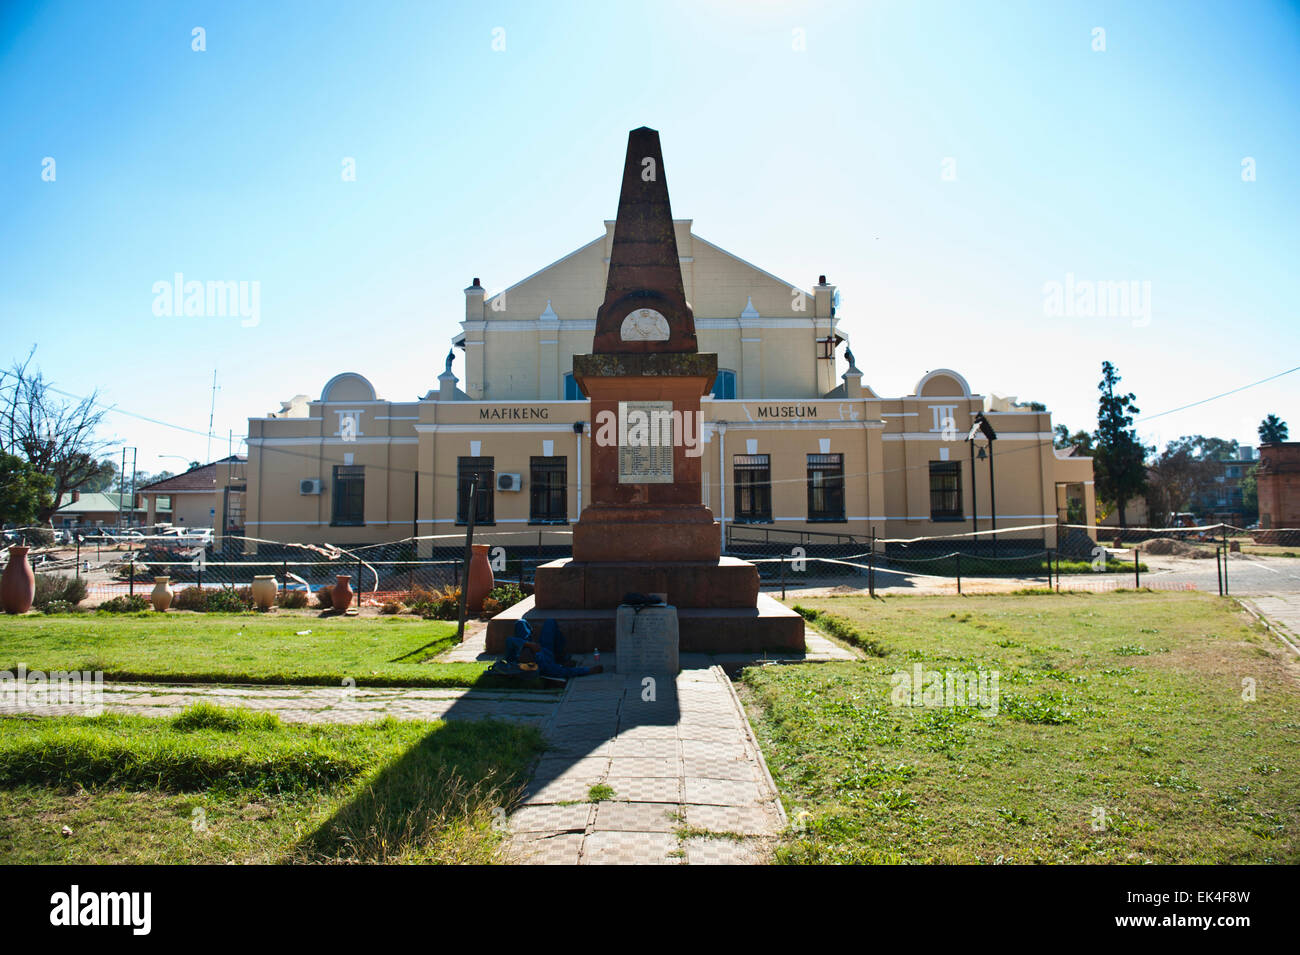 the mafikenk museum that is being renovated. a statue of cecil john rhodes was stolen in broard daylight from the - Stock Image